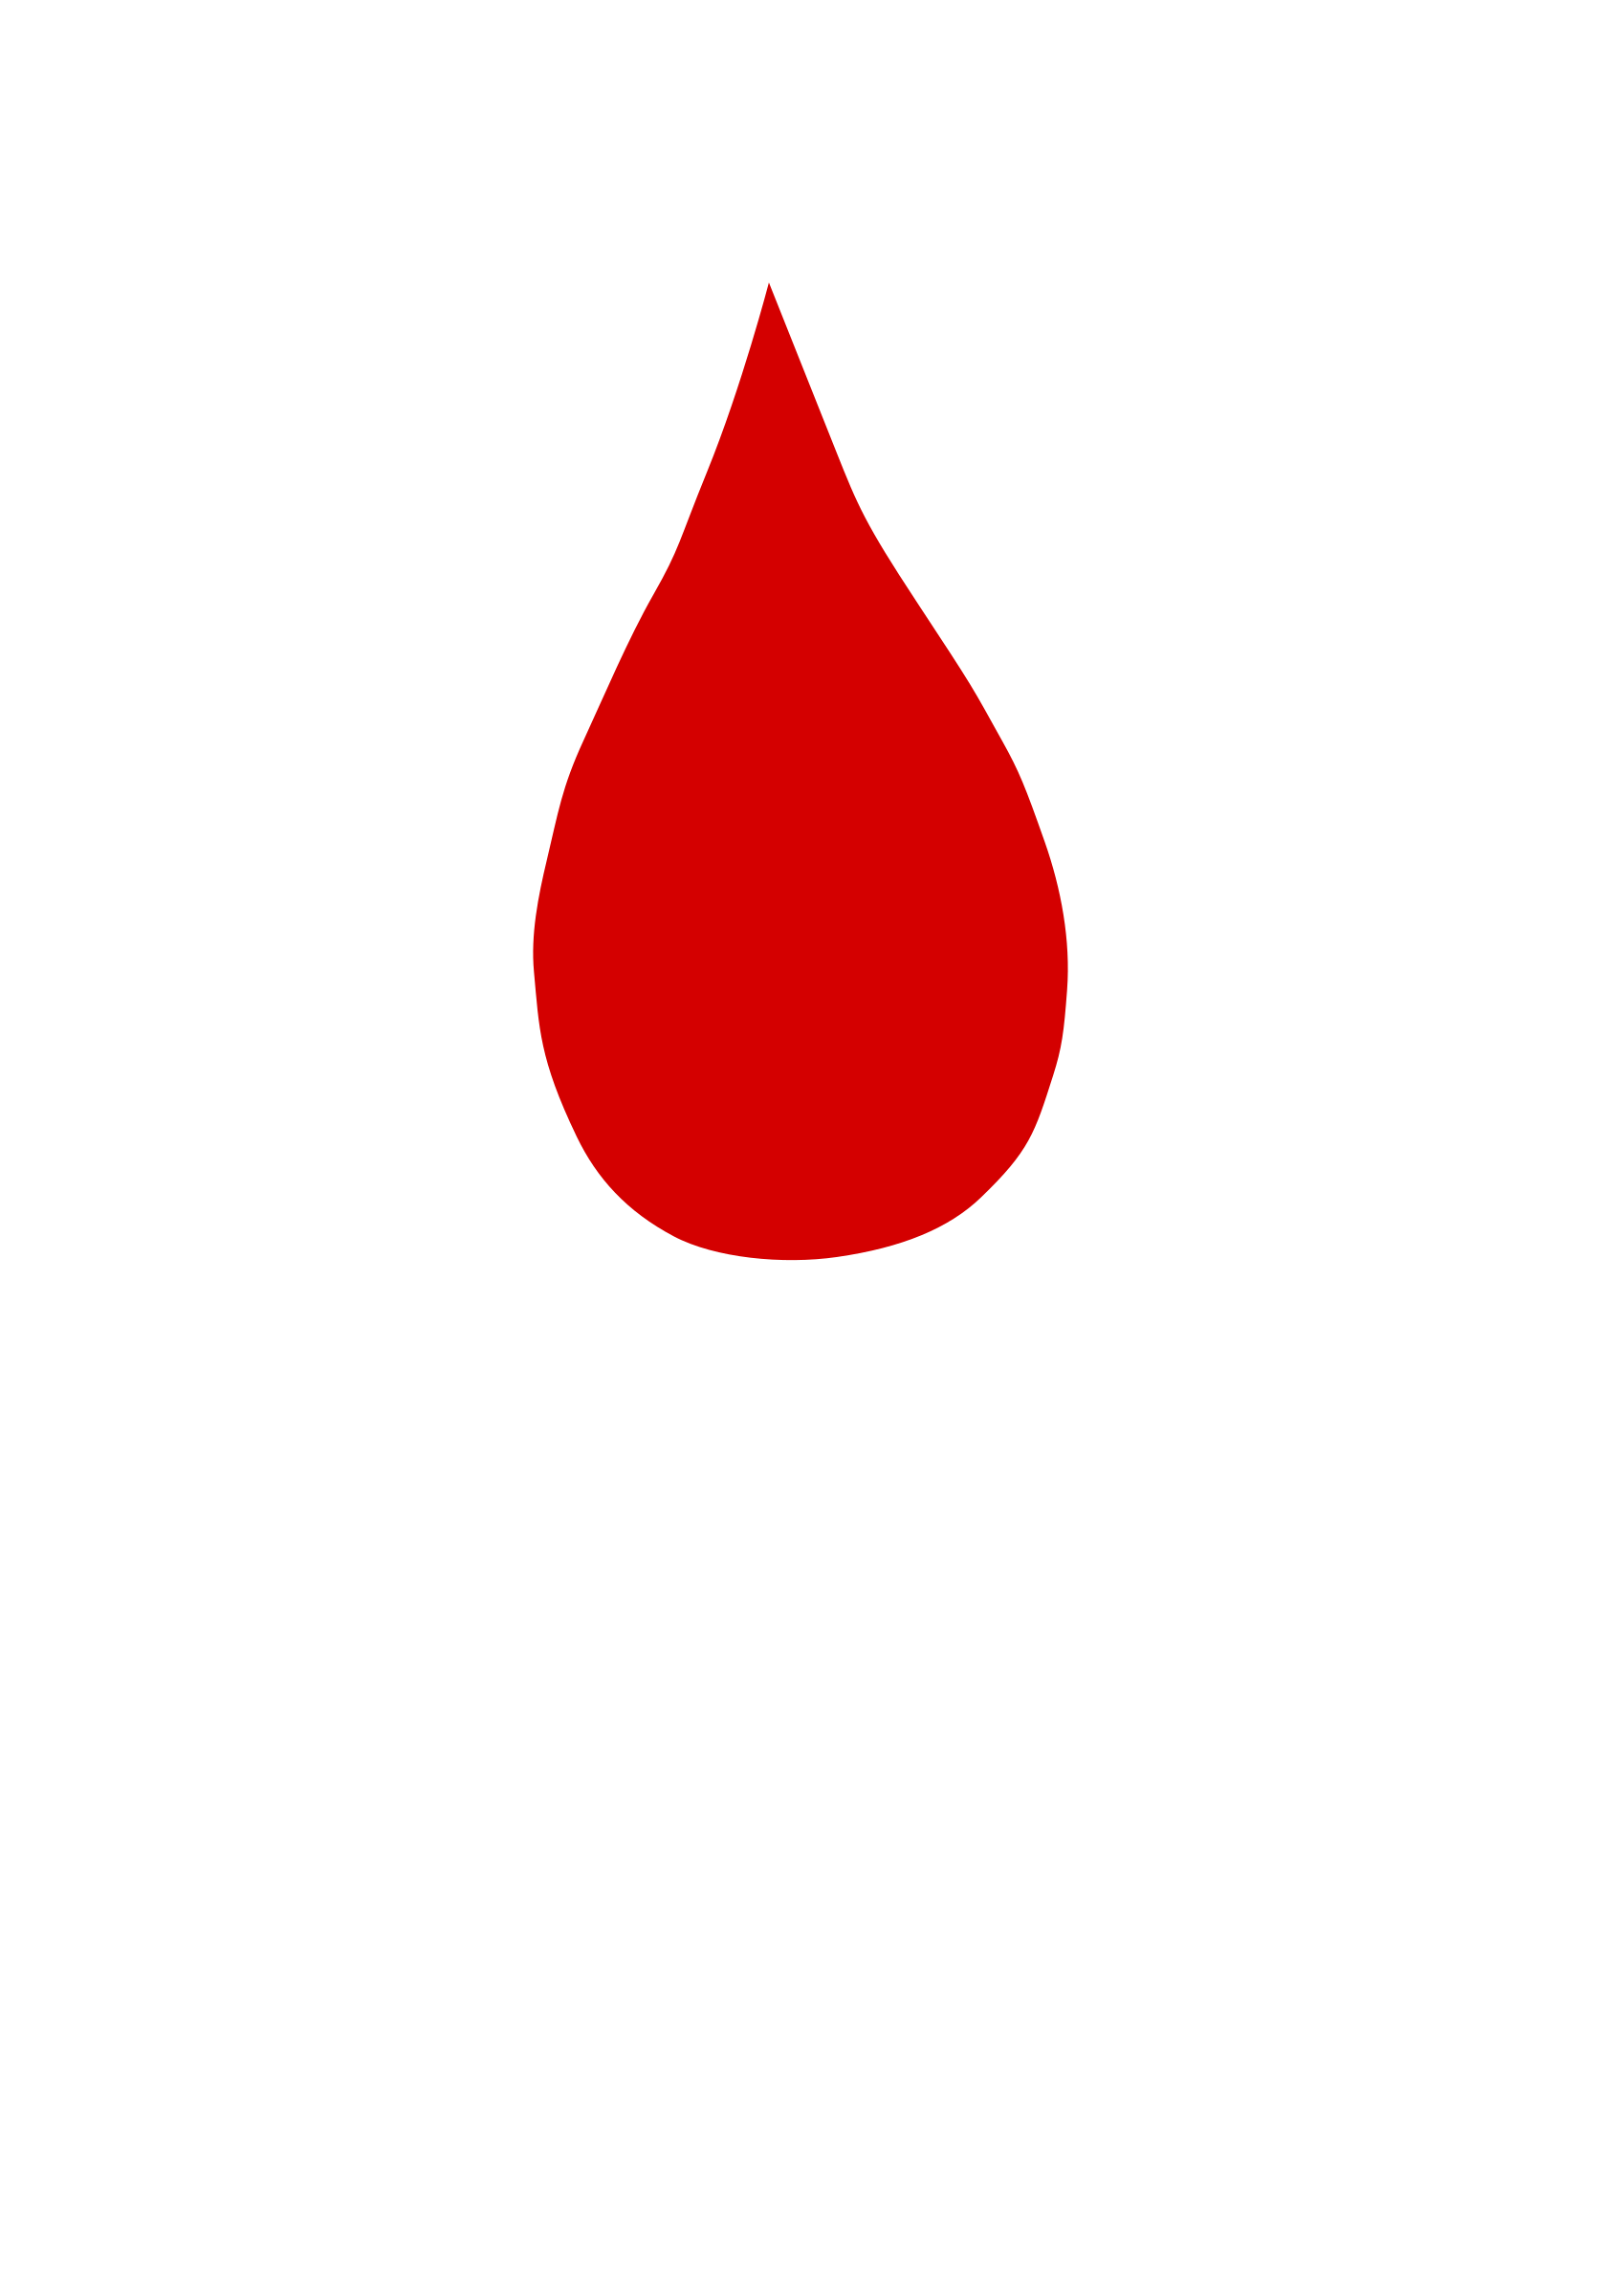 Blood drop png. Icons free and downloads